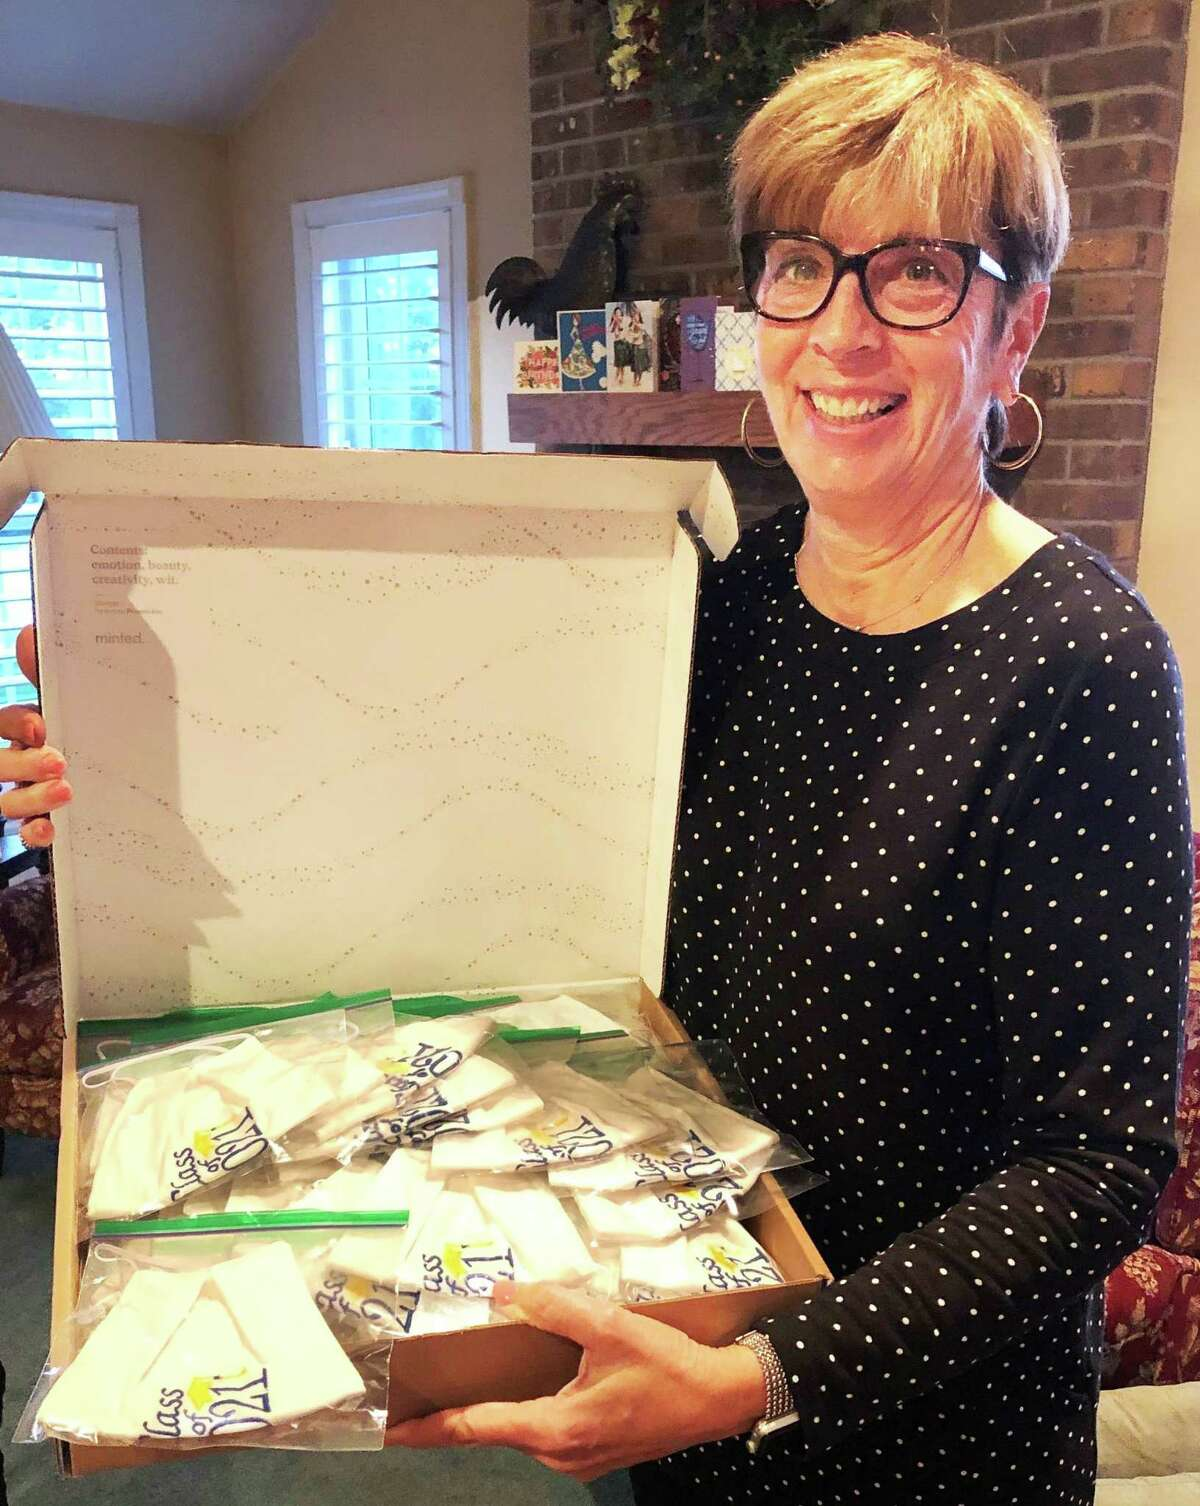 With her alma mater in mind, Middletown Mercy High School alumna LuAnn Hardacker created a Mercy blue and gold mask.